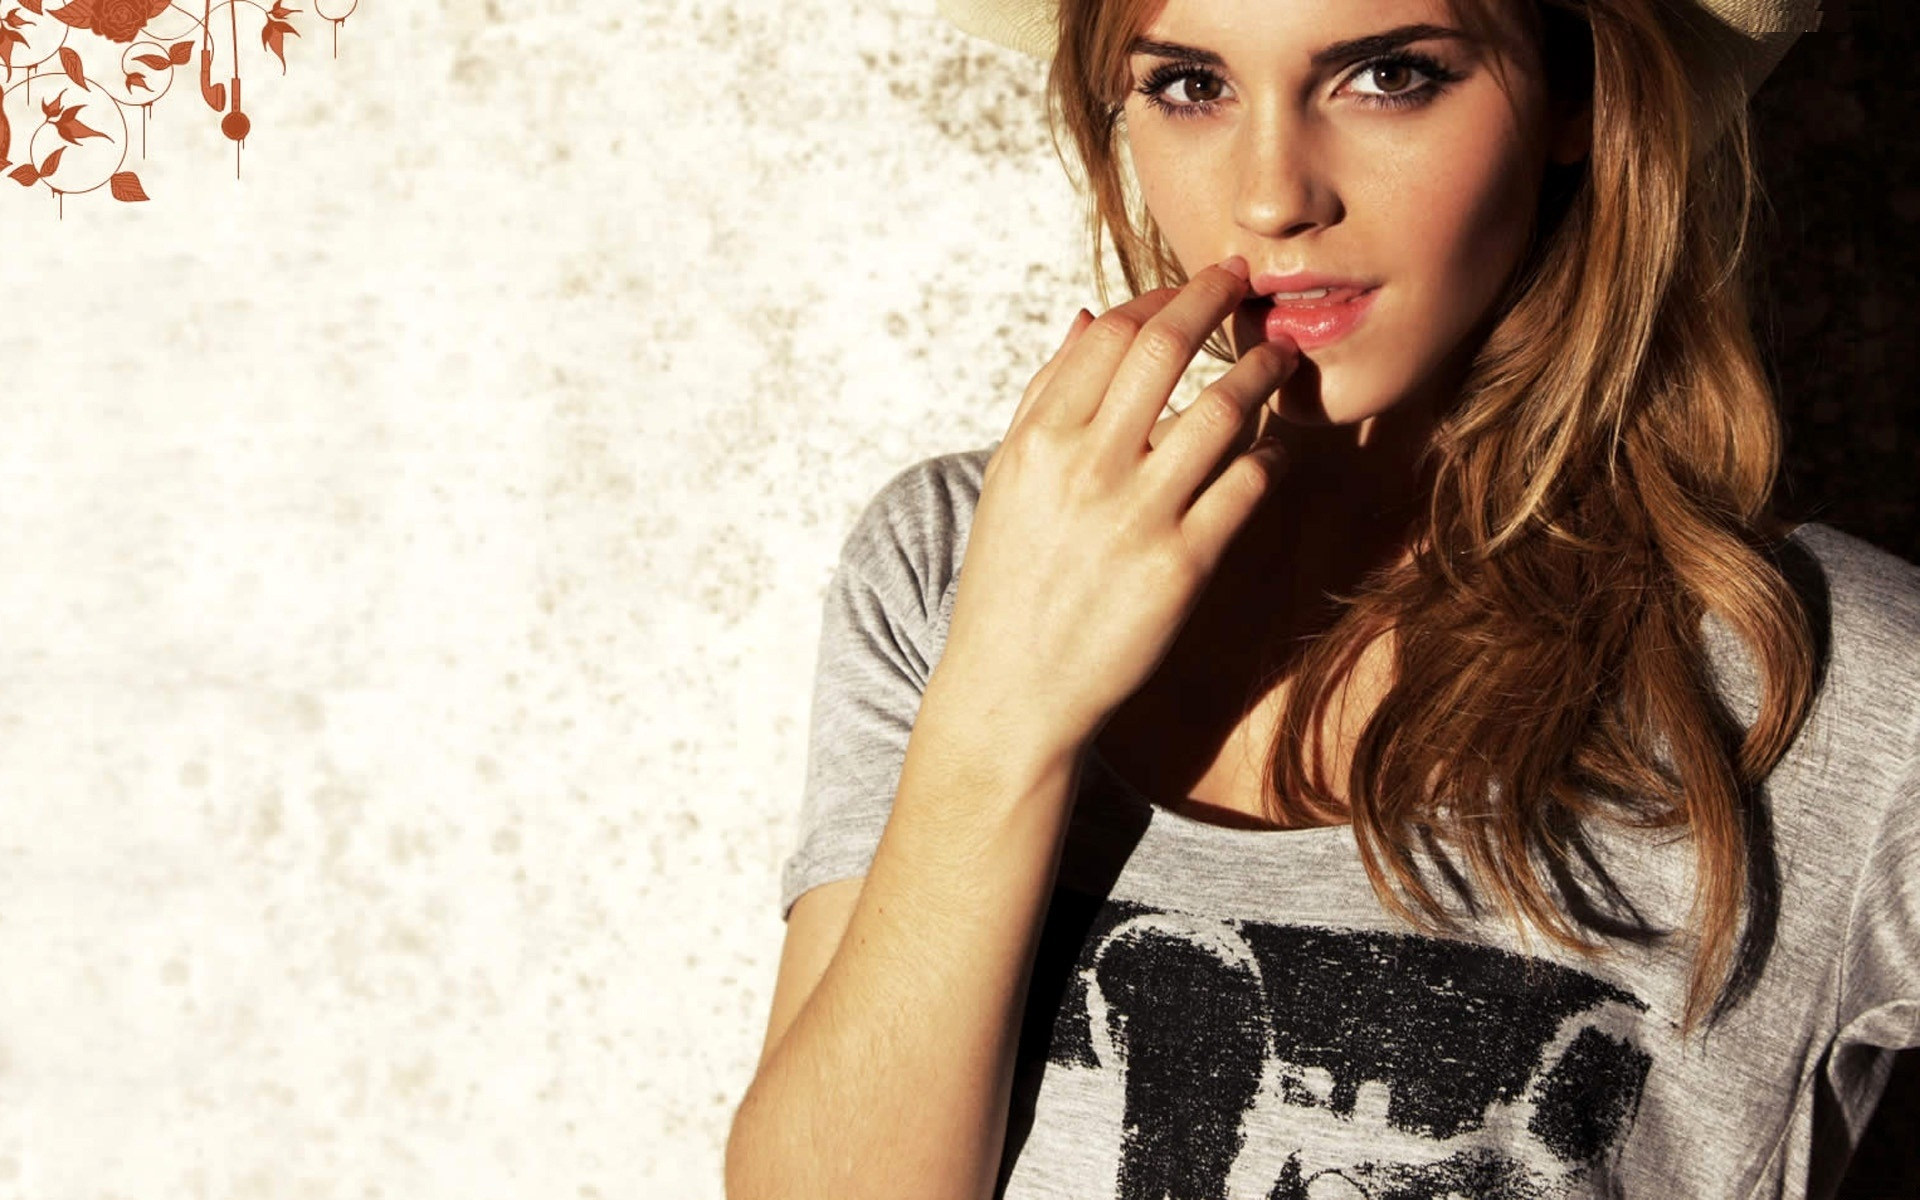 Lovely Emma Watson Fantastic Attractive Face Look Still Desktop Hd Mobile Free Background Images